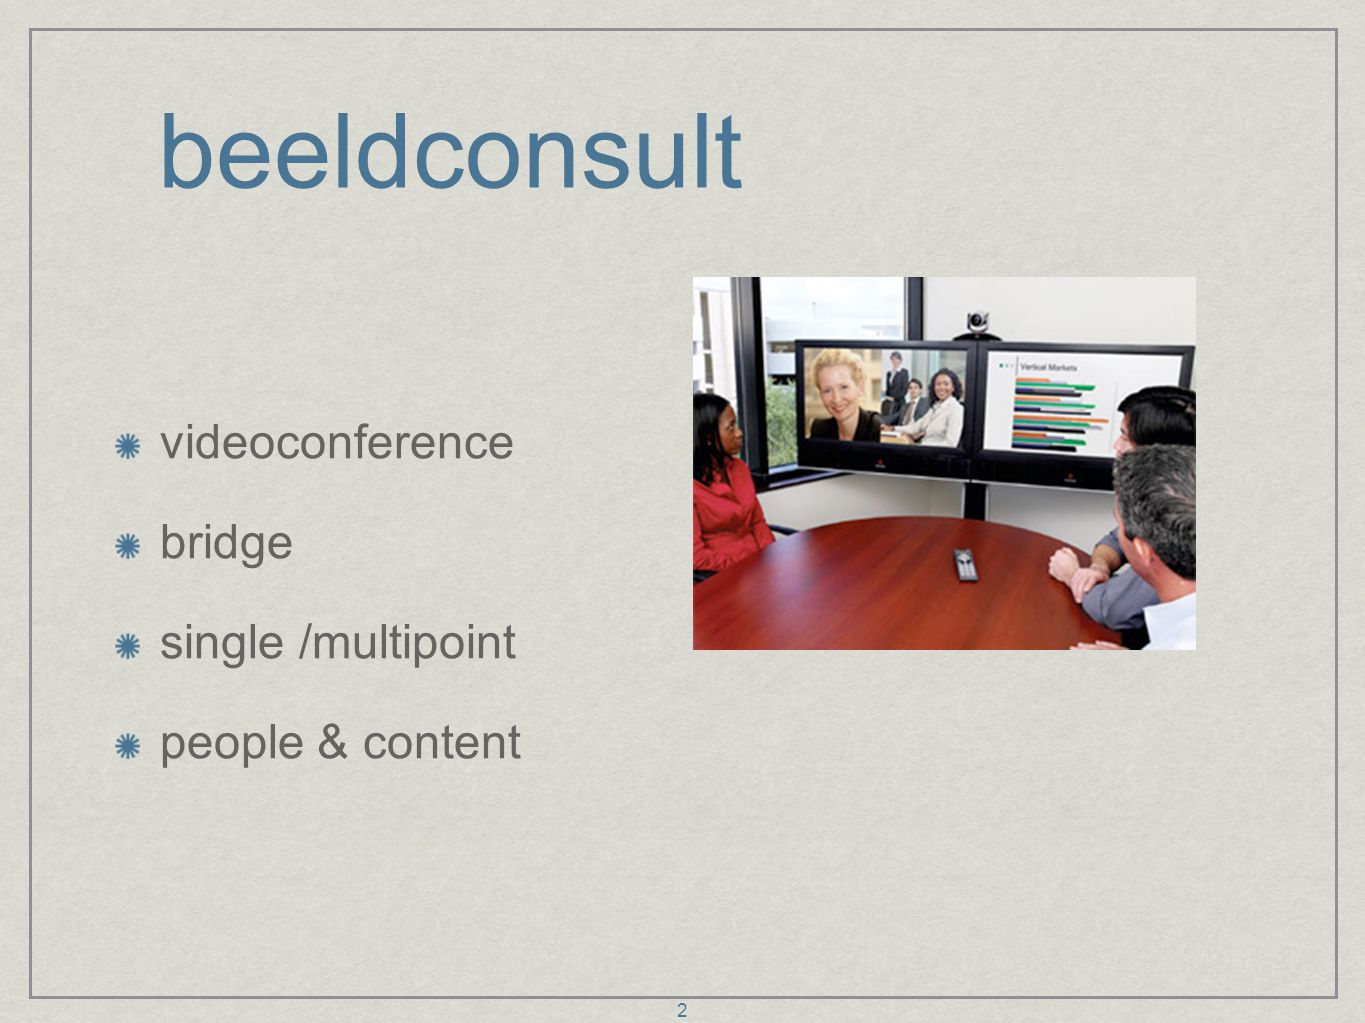 beeldconsult videoconference bridge single /multipoint